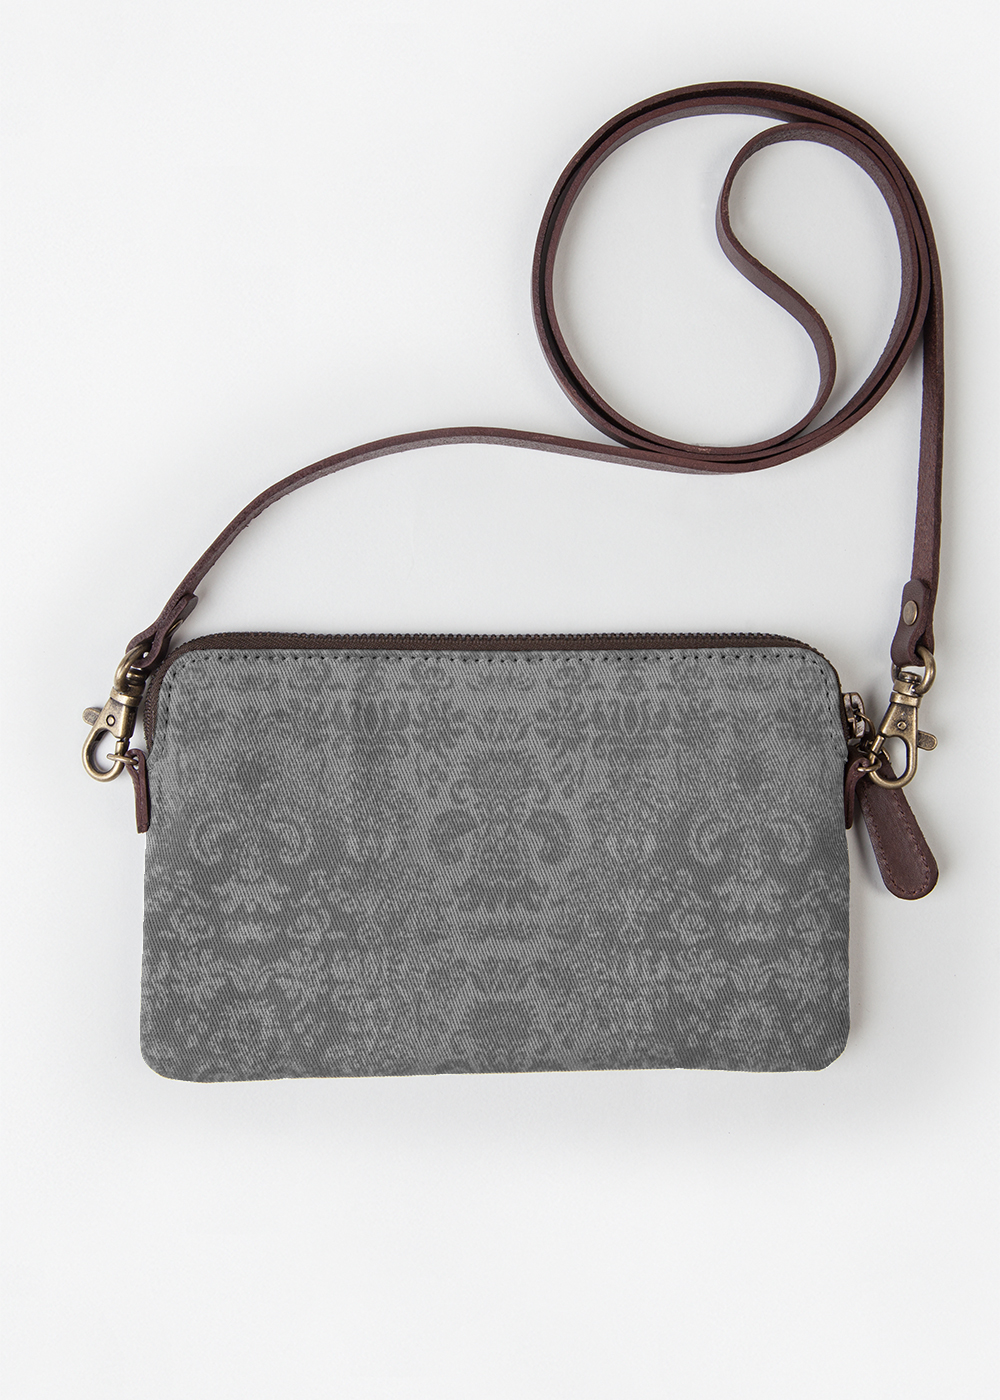 VIDA Statement Clutch - Coming Through Clutch by VIDA 3J3JknW